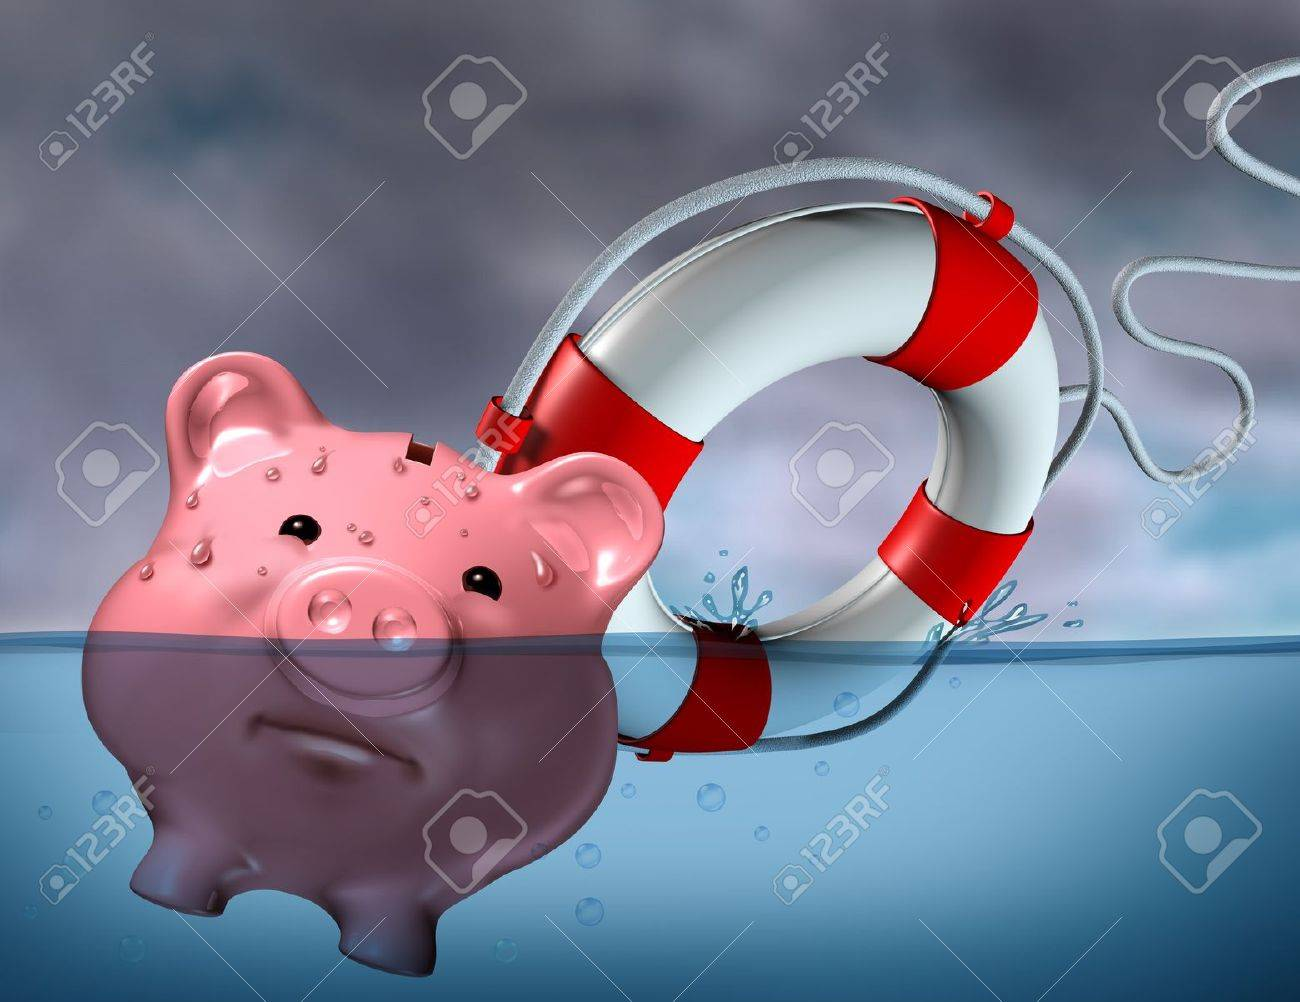 Financial Aid and rescue from debt problems and keeping your investments above water represented by a drowning pink piggy bank sinking in blue water with a life preserver as a symbol of urgent business help and assistance from bankruptcy. Stock Photo - 11718566